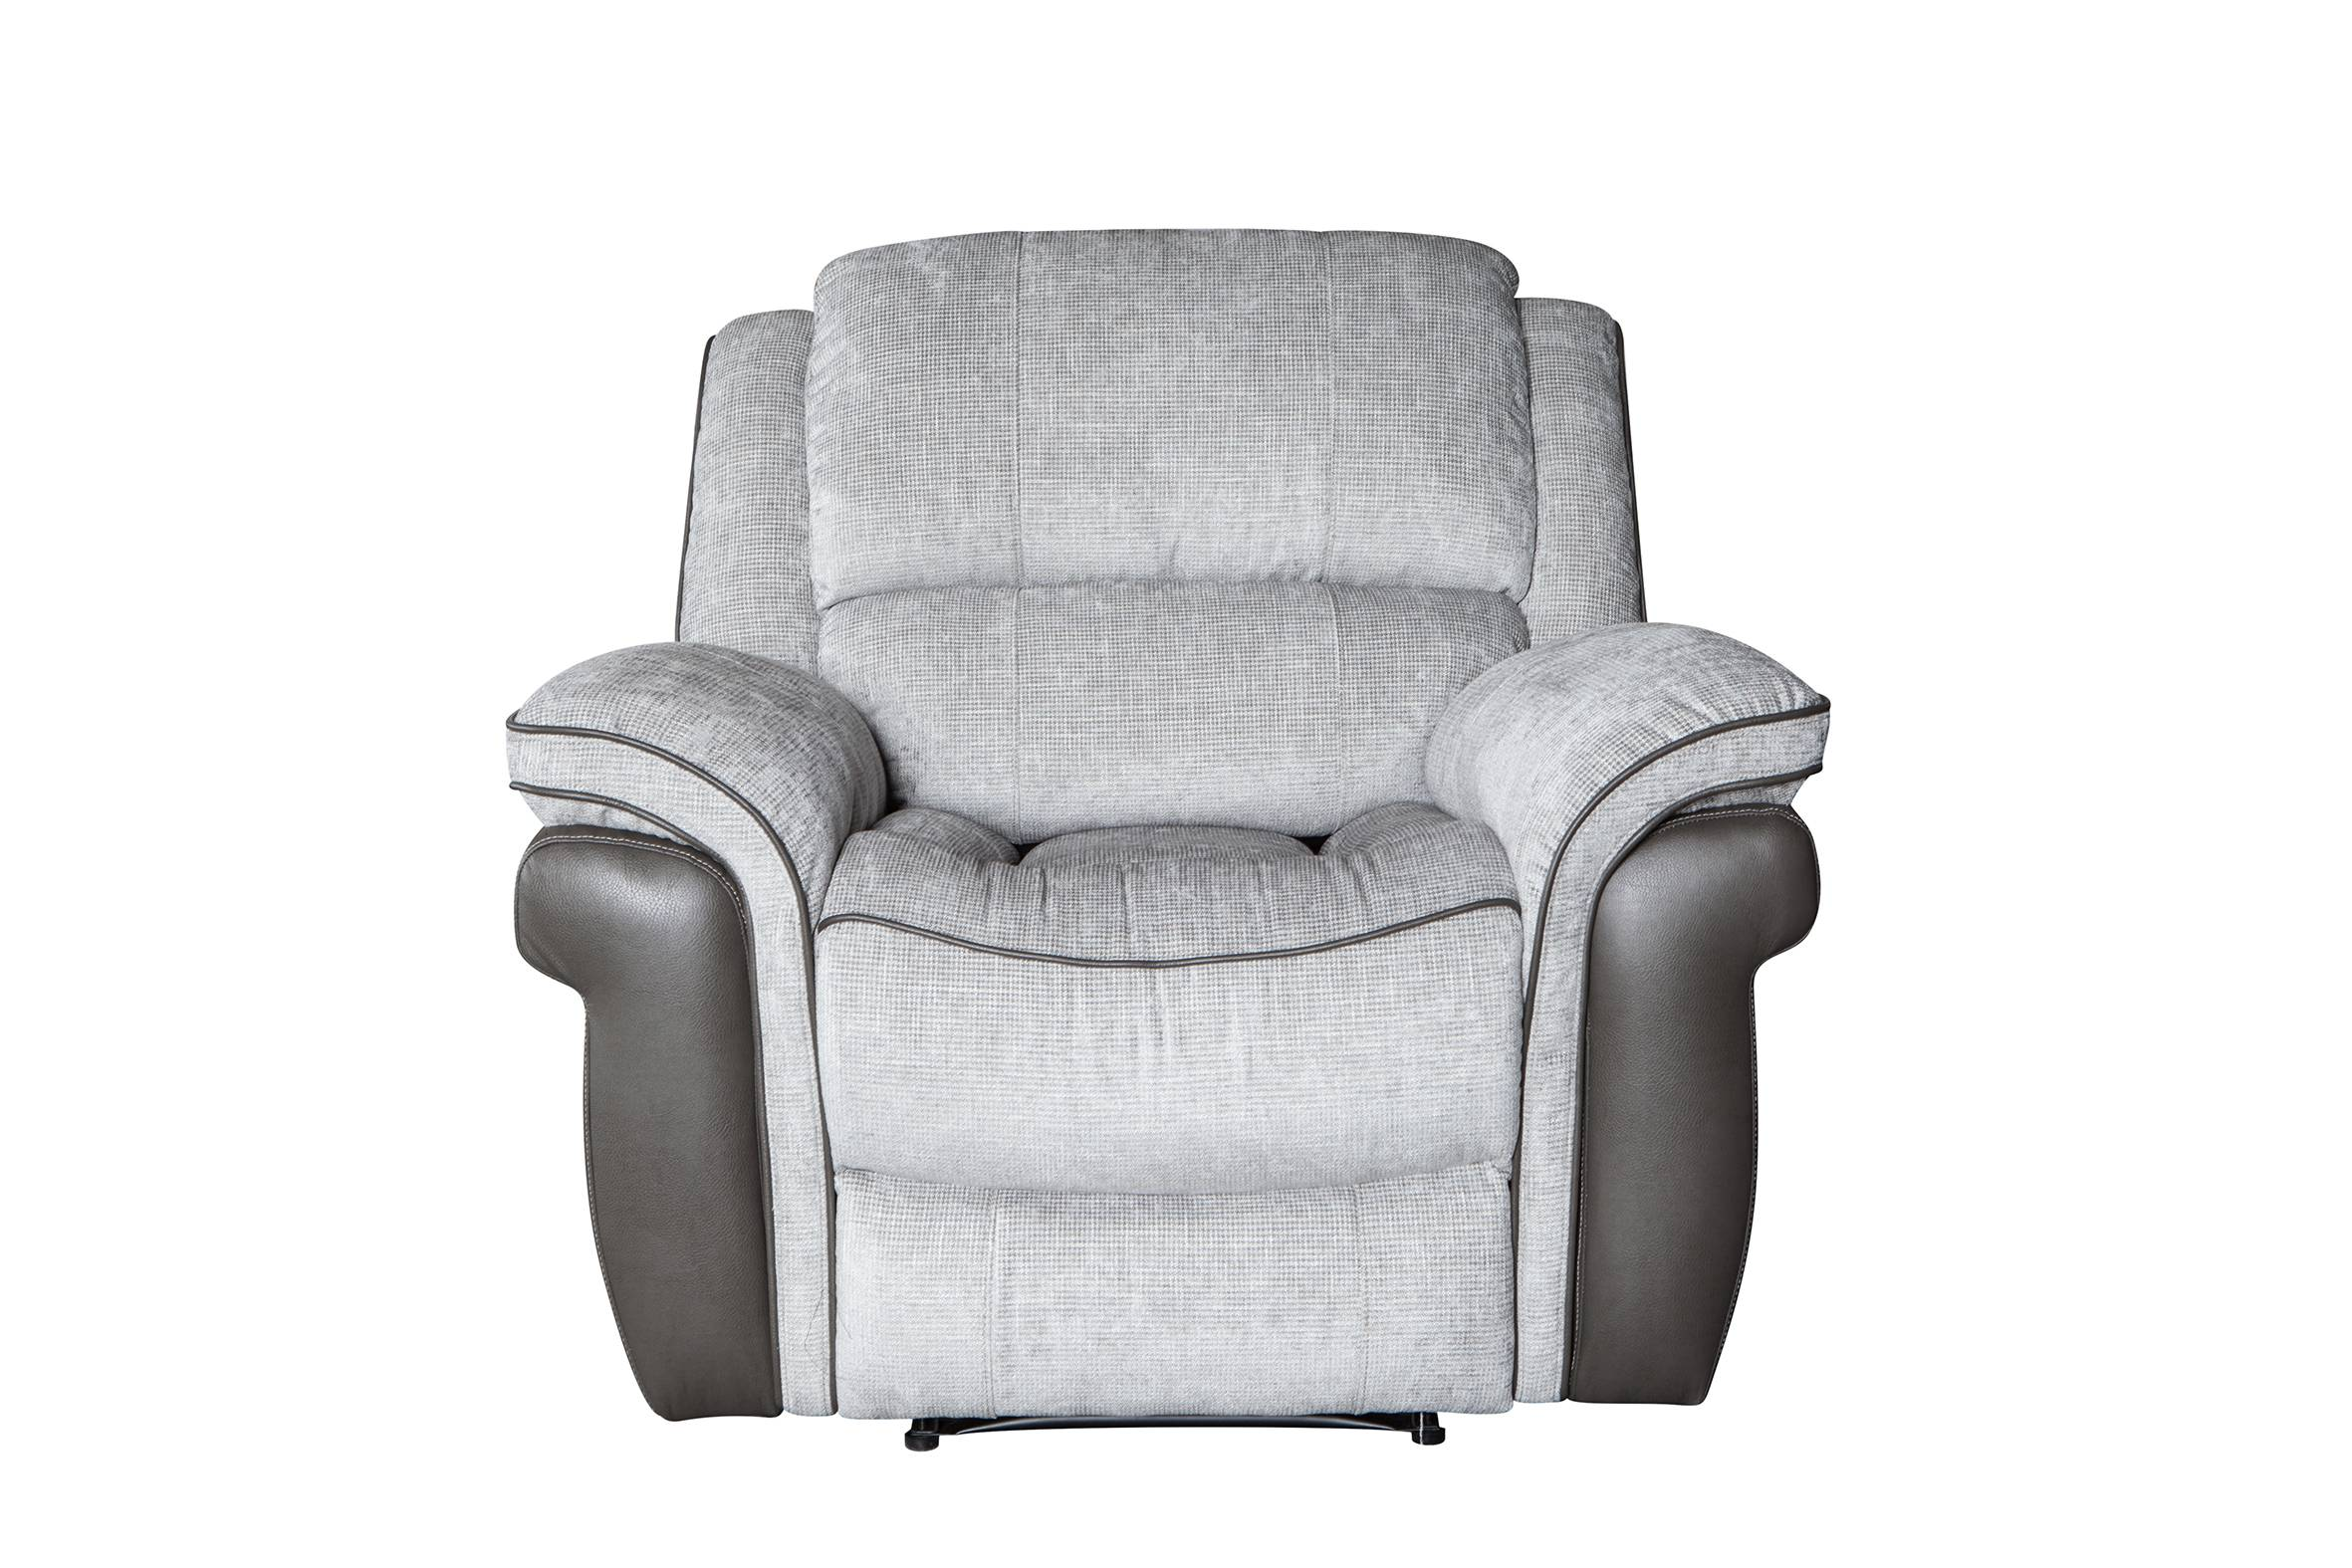 Fashion stitching design electric recliner chair,home theatre recliner sofa